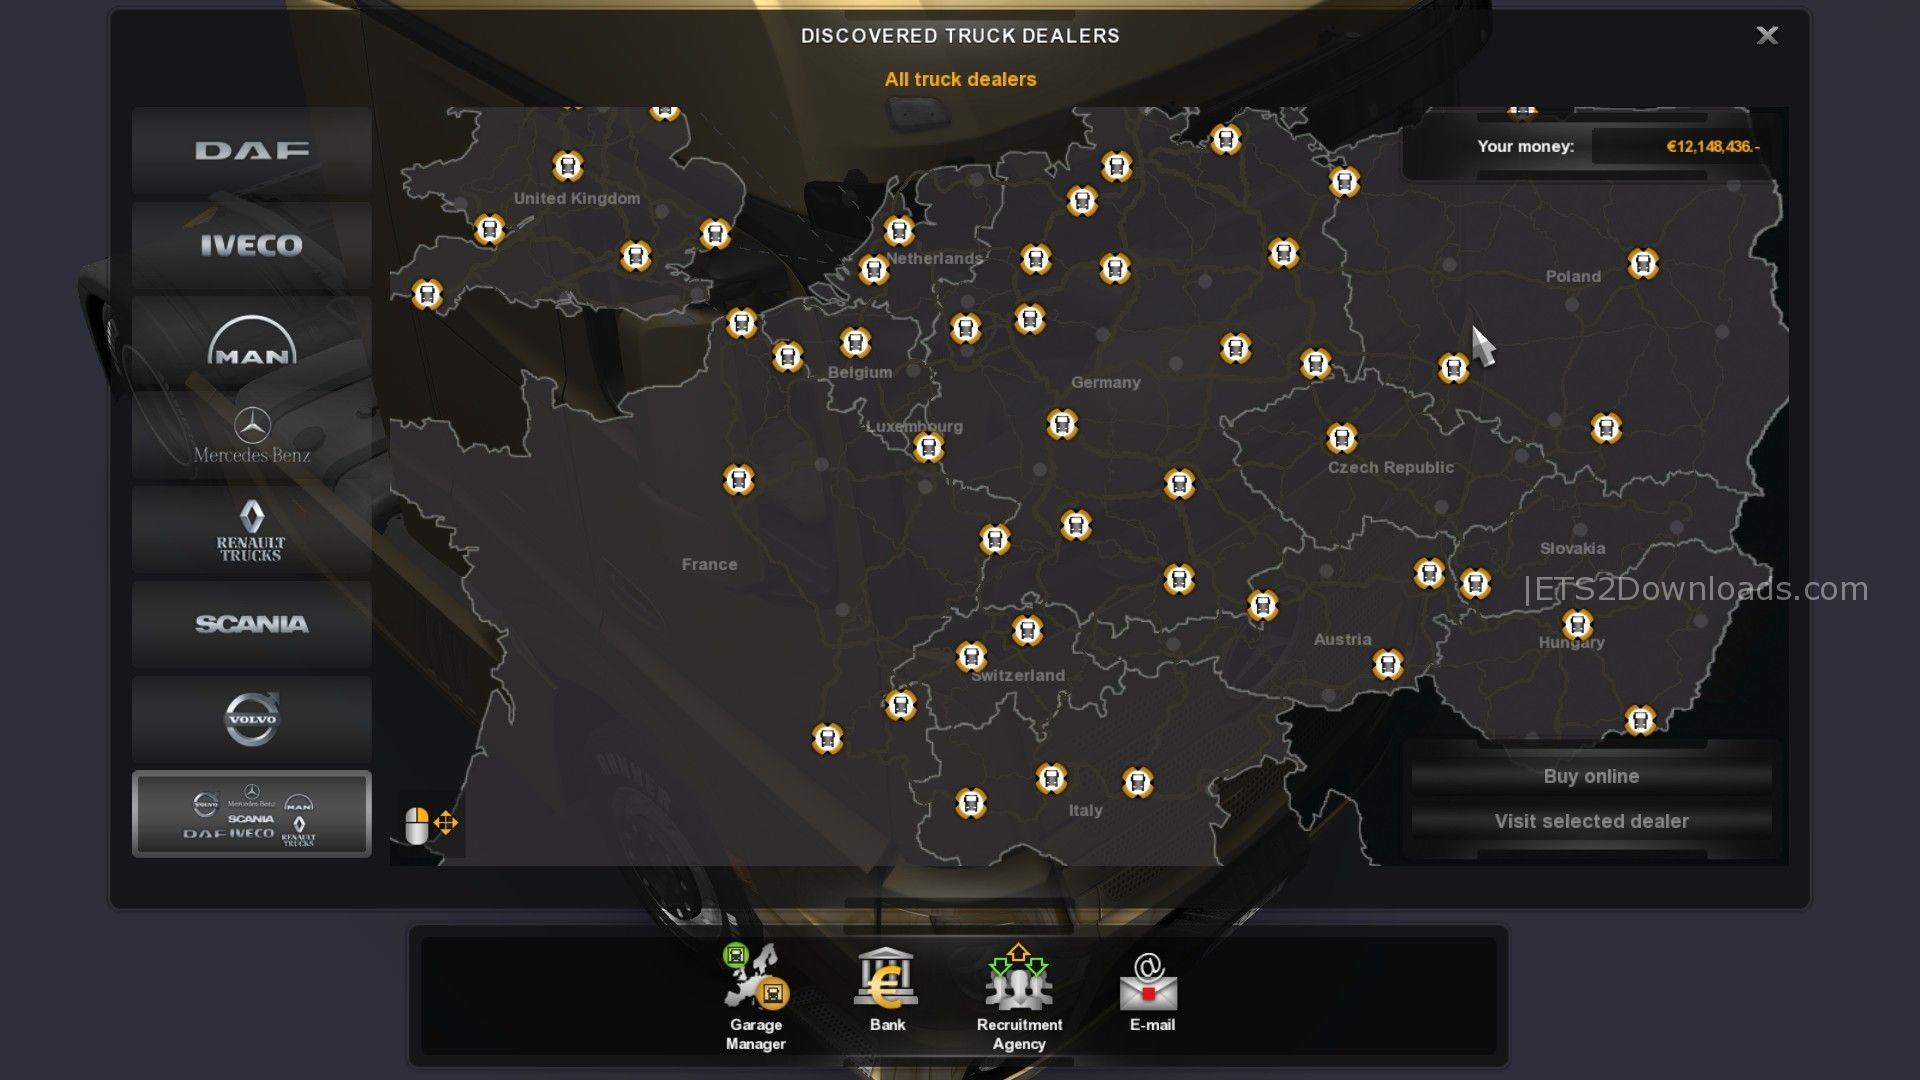 Euro truck simulator 2 truck dealers map for Mercedes benz dealer locations